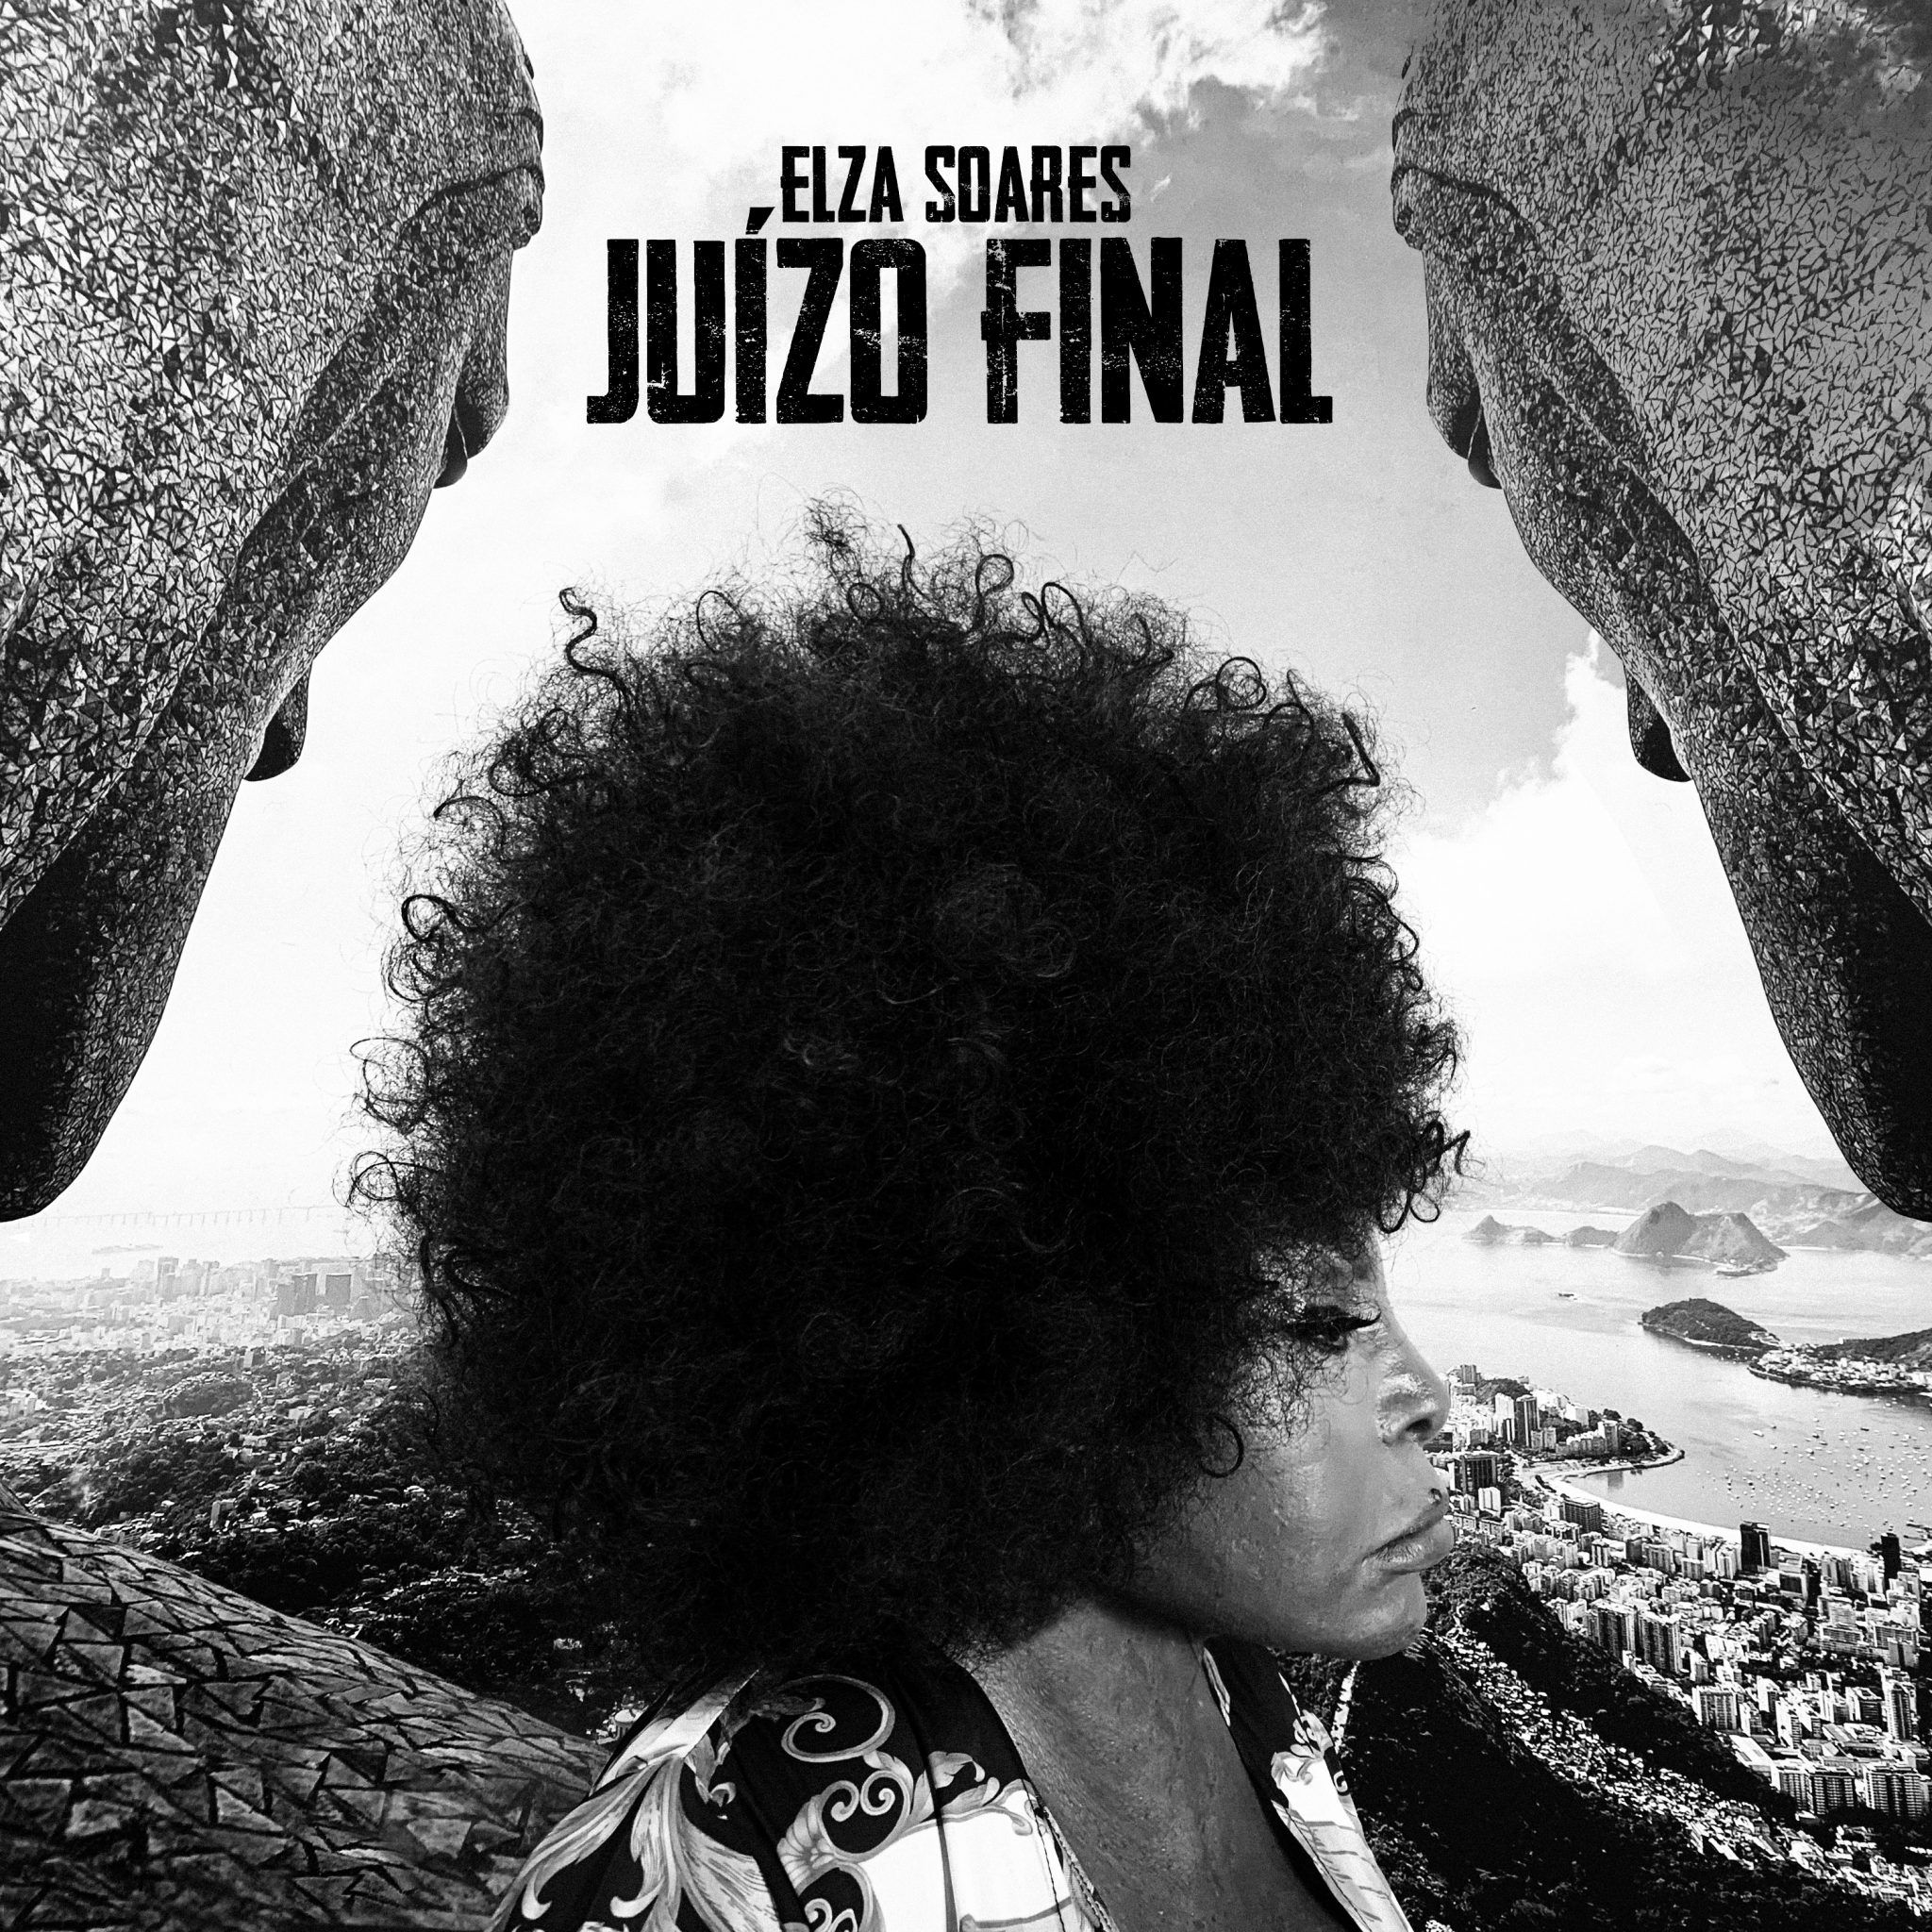 Elza Soares Juizo Final single scaled